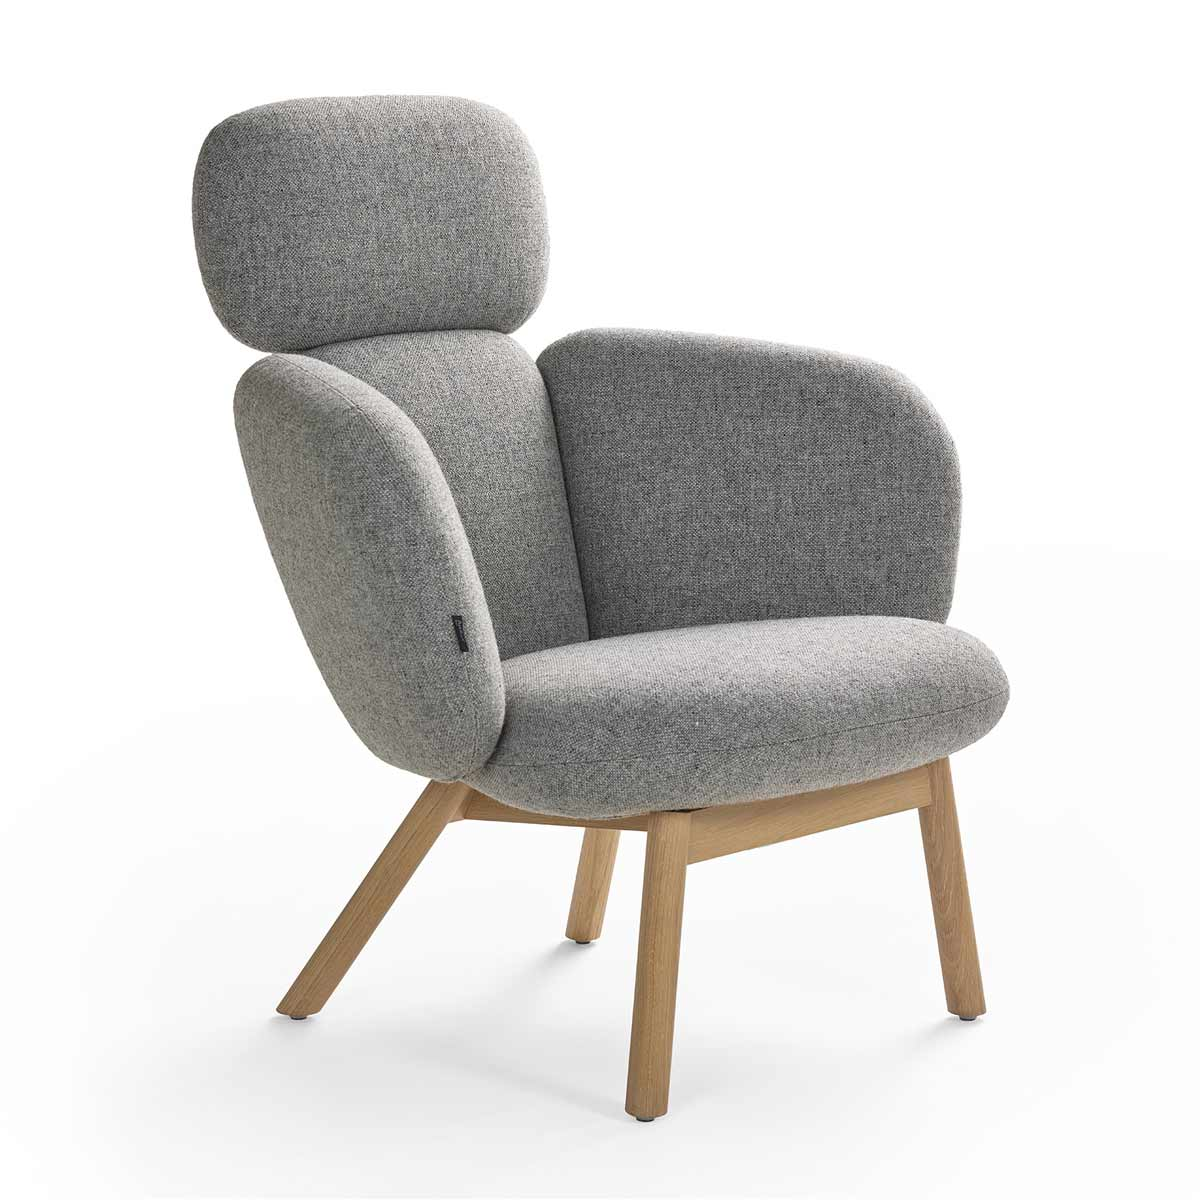 Incroyable Bras Highback Easy Chair By Artifort. Bras_Highback_Easy Chair  In Artifort Select Upholstery